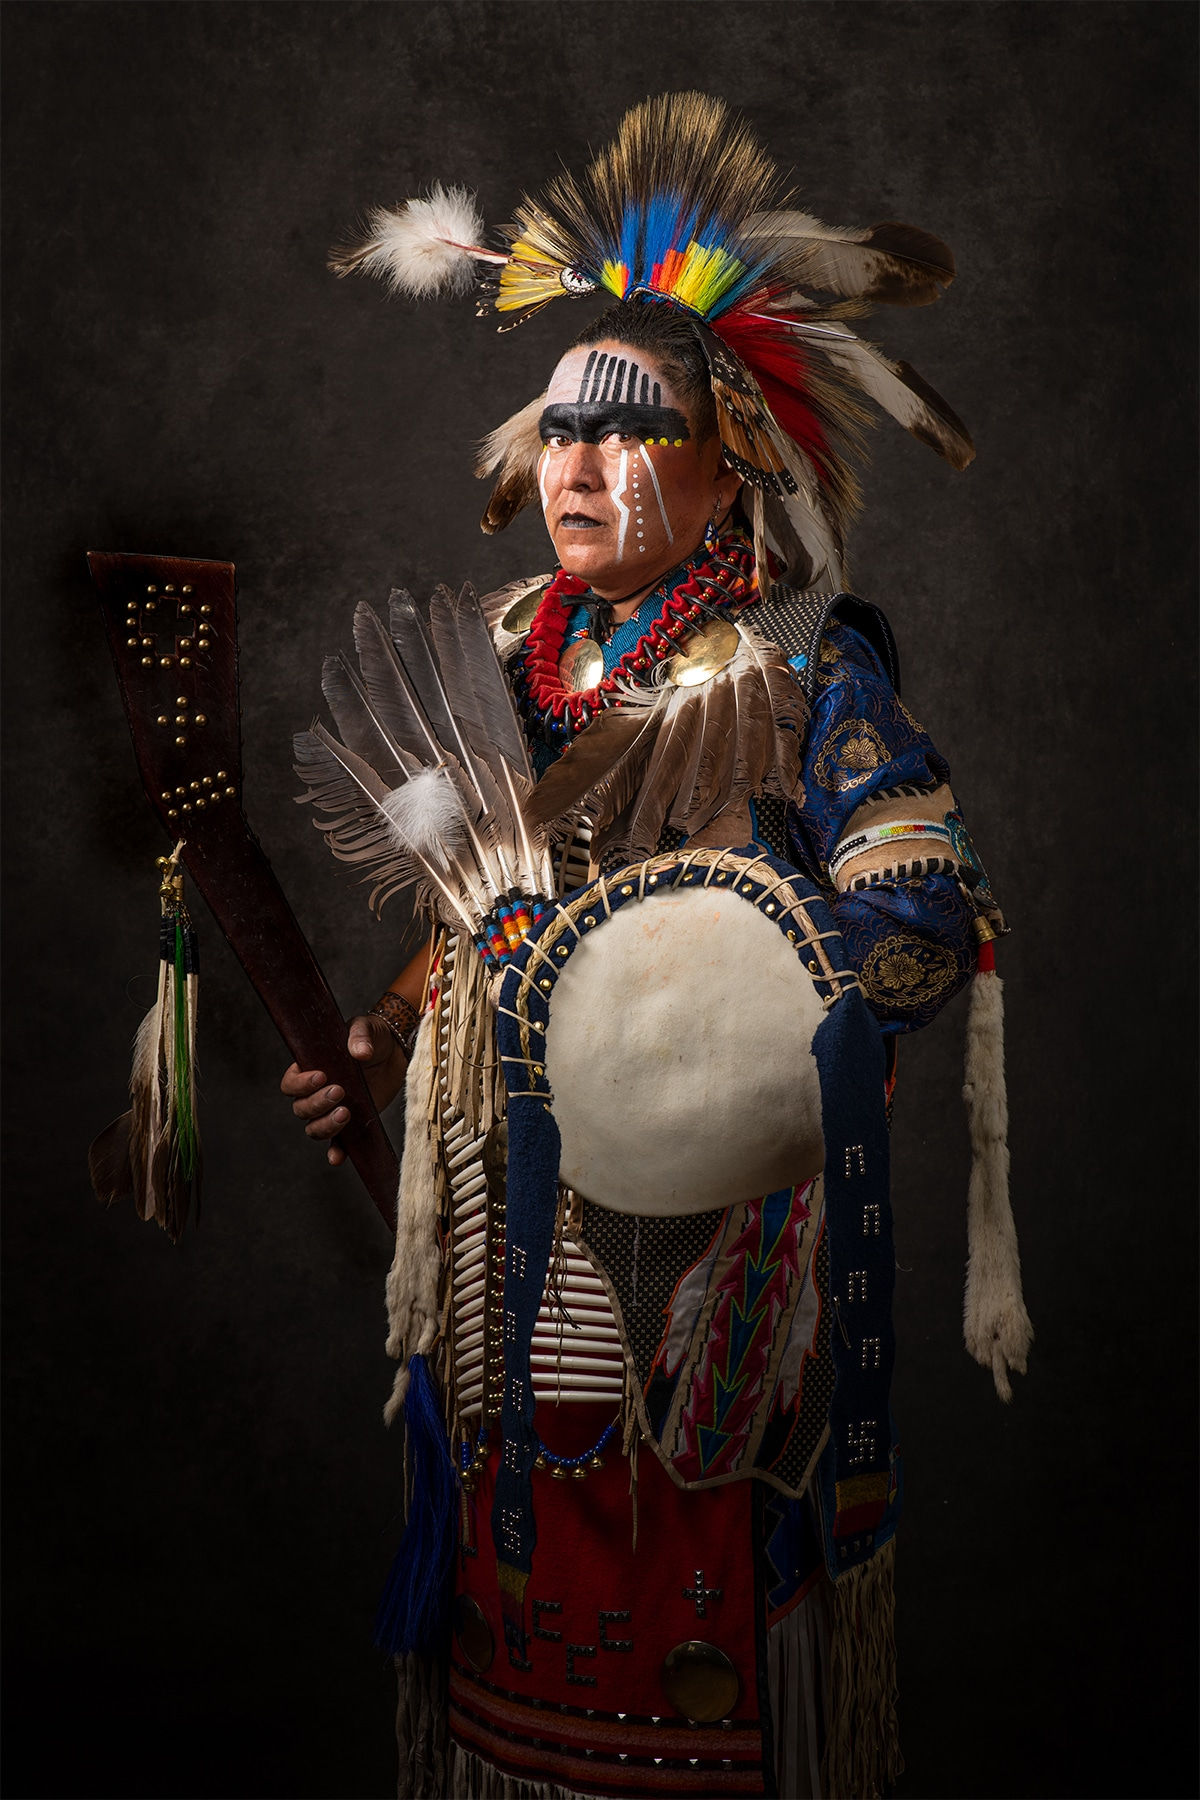 Portrait of Indigenous Woman from New Mexico by Craig Varjabedian